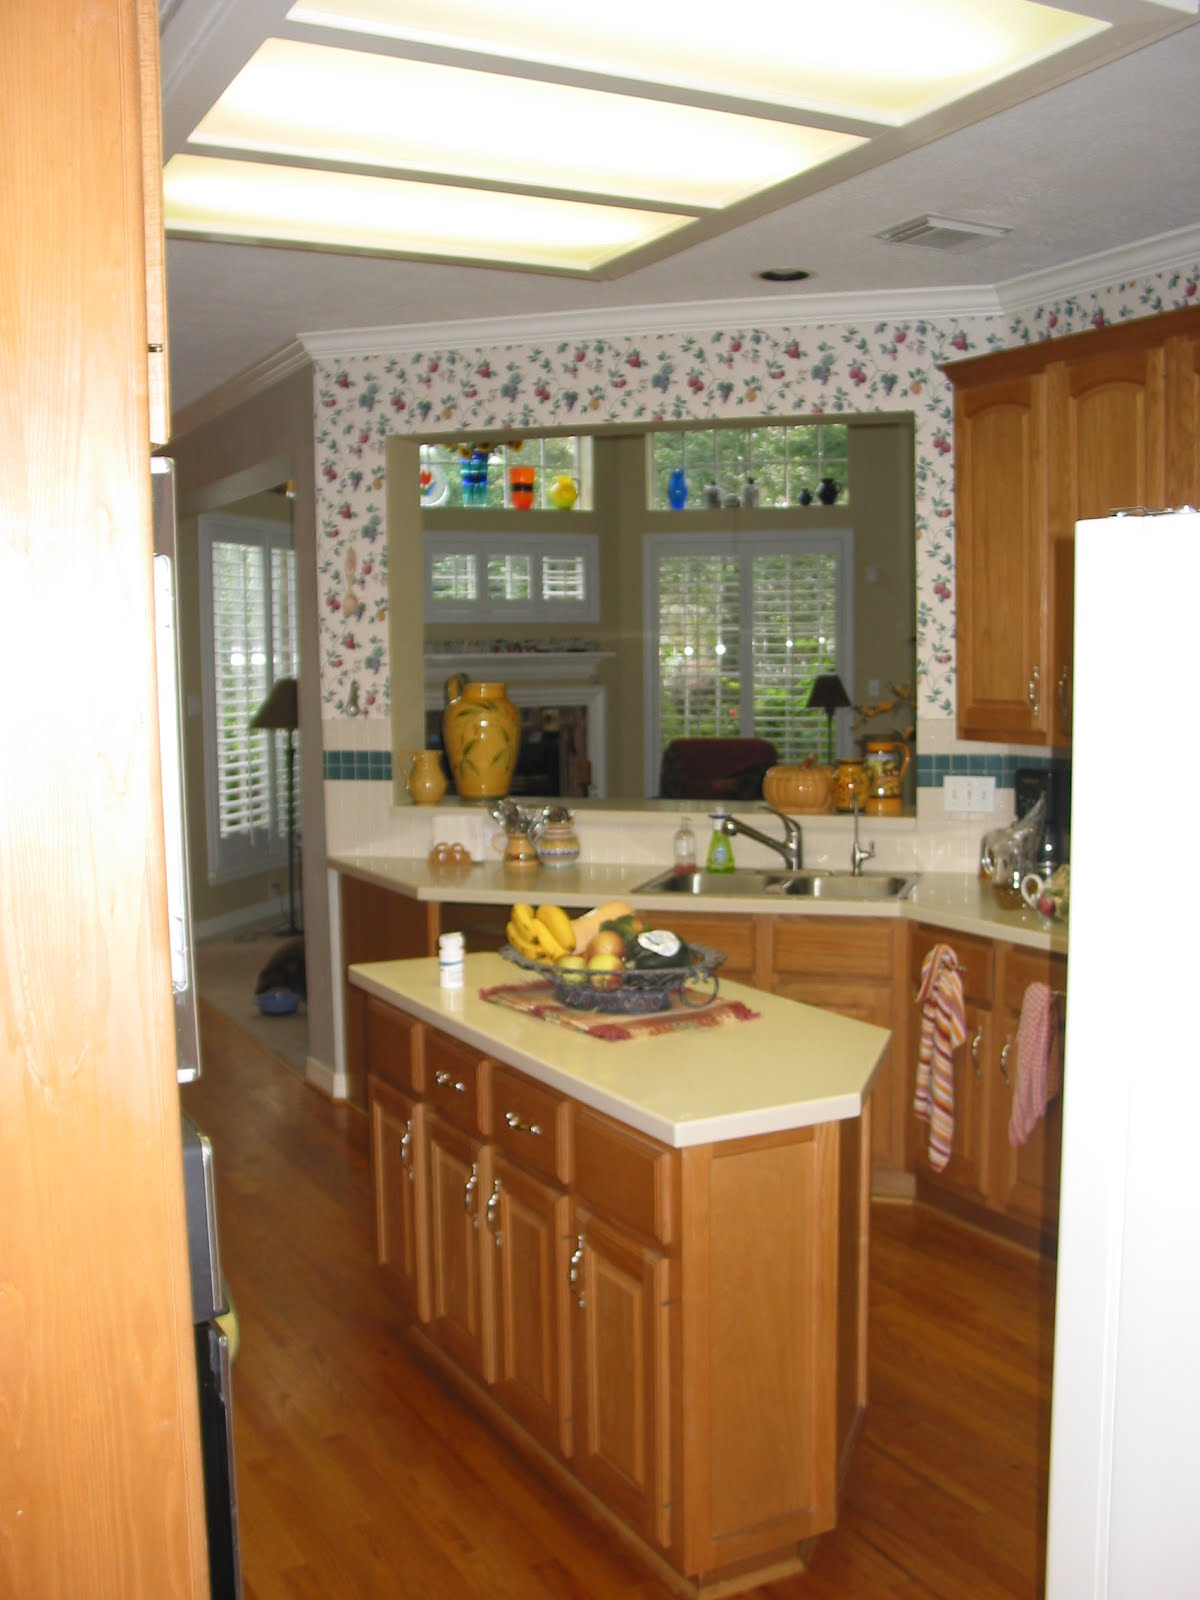 awesome shaped kitchen island | An oddly-shaped kitchen island | Why it's one of my ...